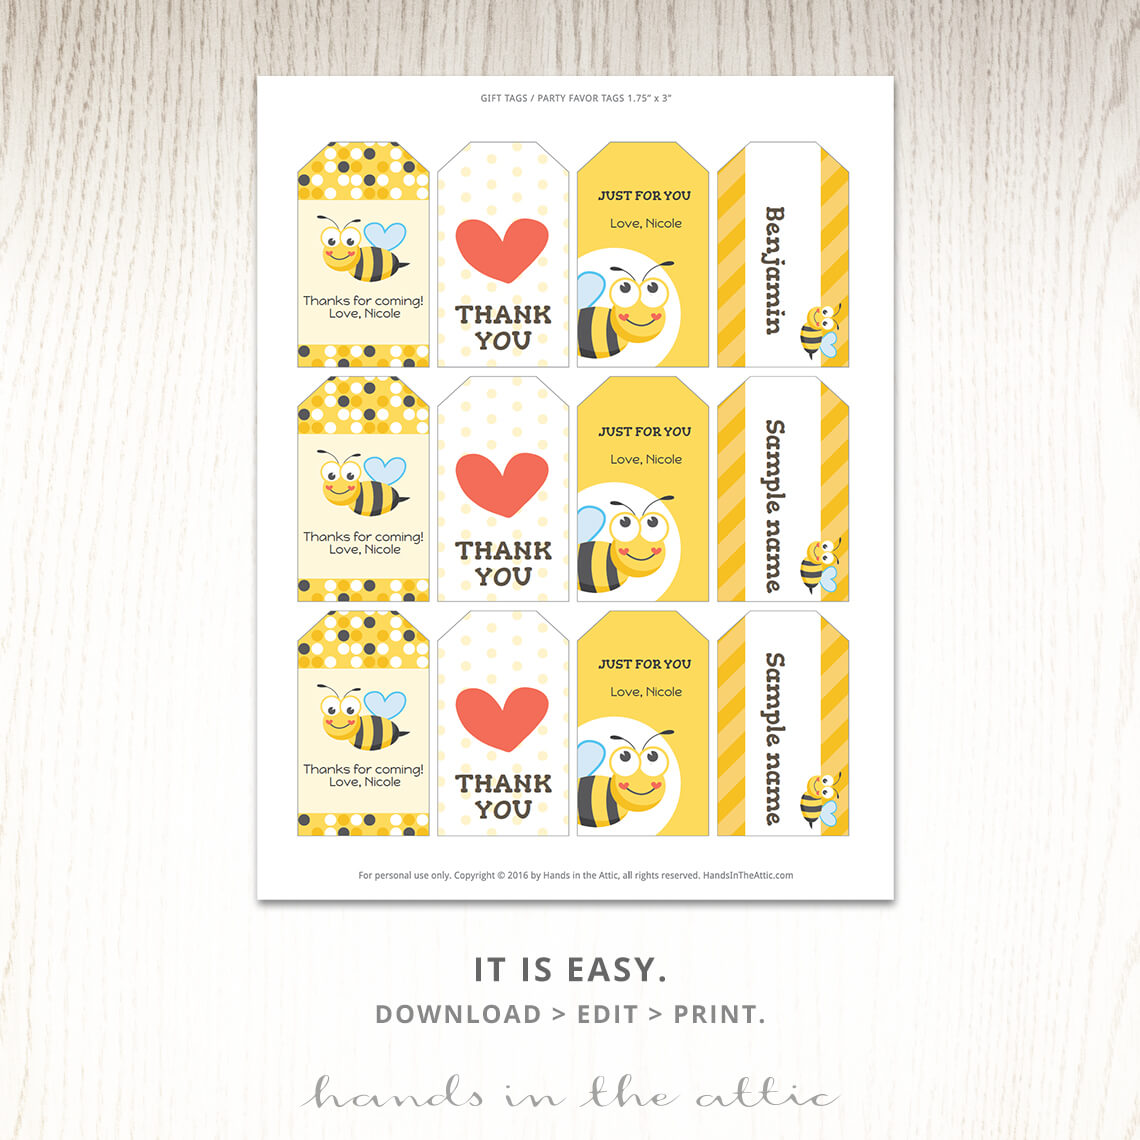 Printable Templates Tags For Ble Bee Party Favors